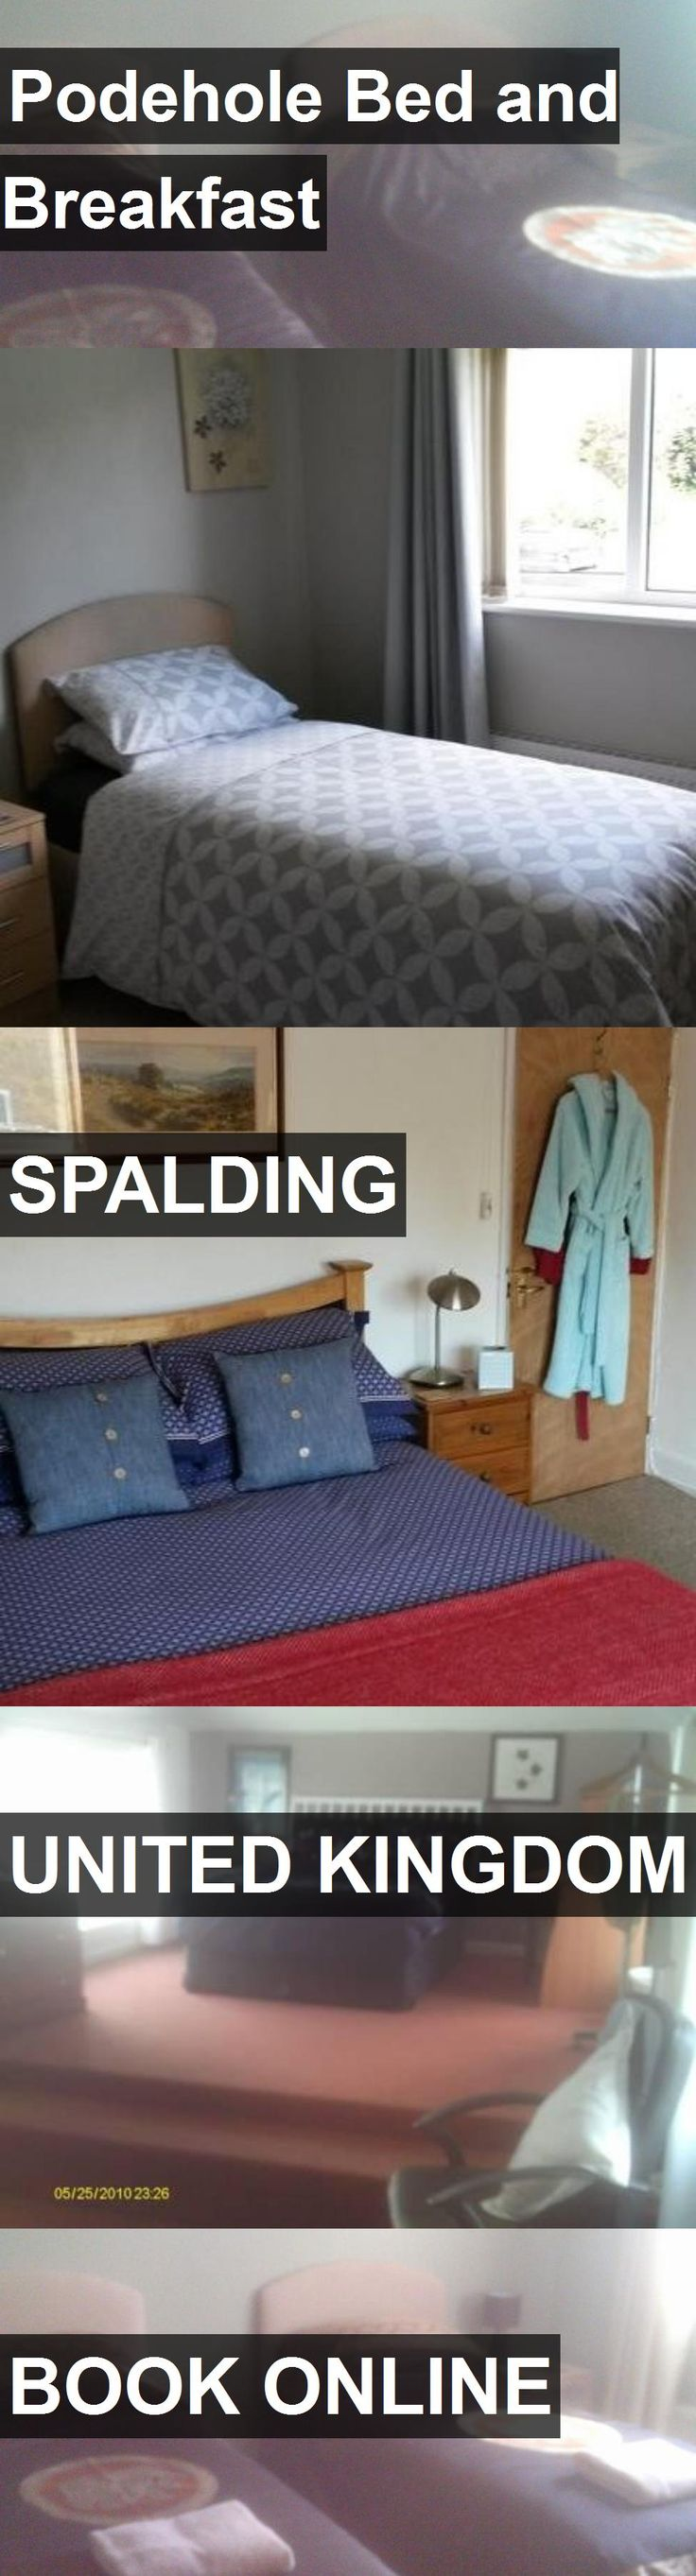 Hotel Podehole Bed and Breakfast in Spalding, United Kingdom. For more information, photos, reviews and best prices please follow the link. #UnitedKingdom #Spalding #hotel #travel #vacation